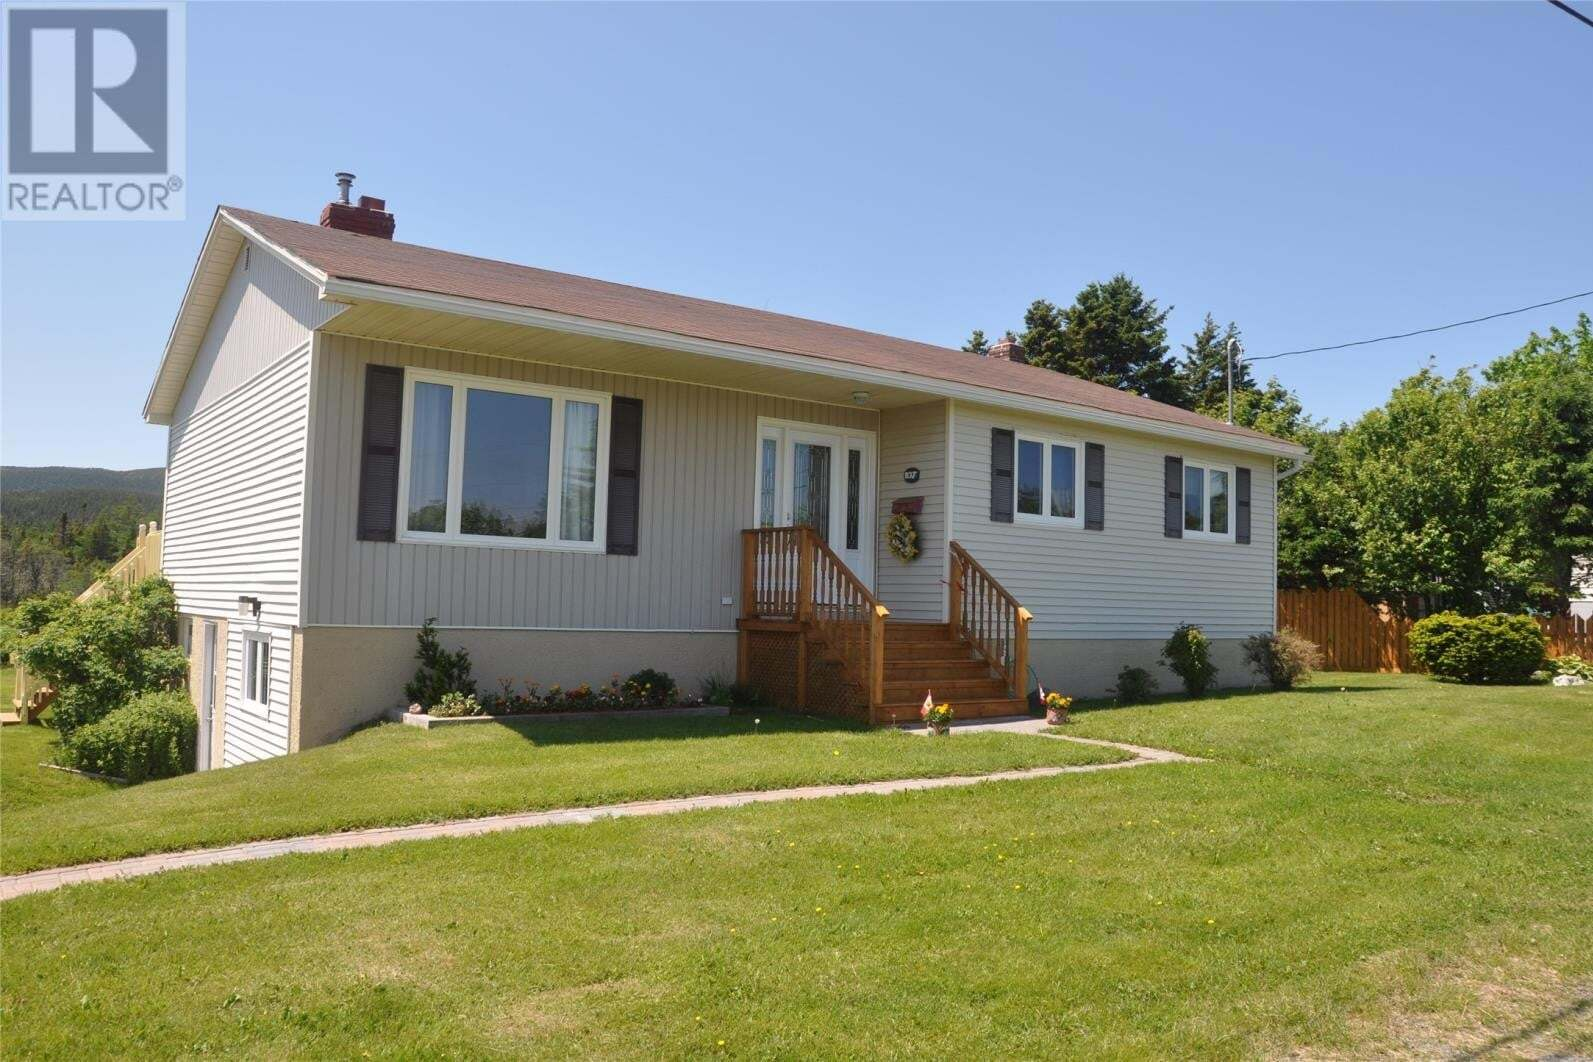 House for sale at 837 Main Rd Pouch Cove Newfoundland - MLS: 1216640